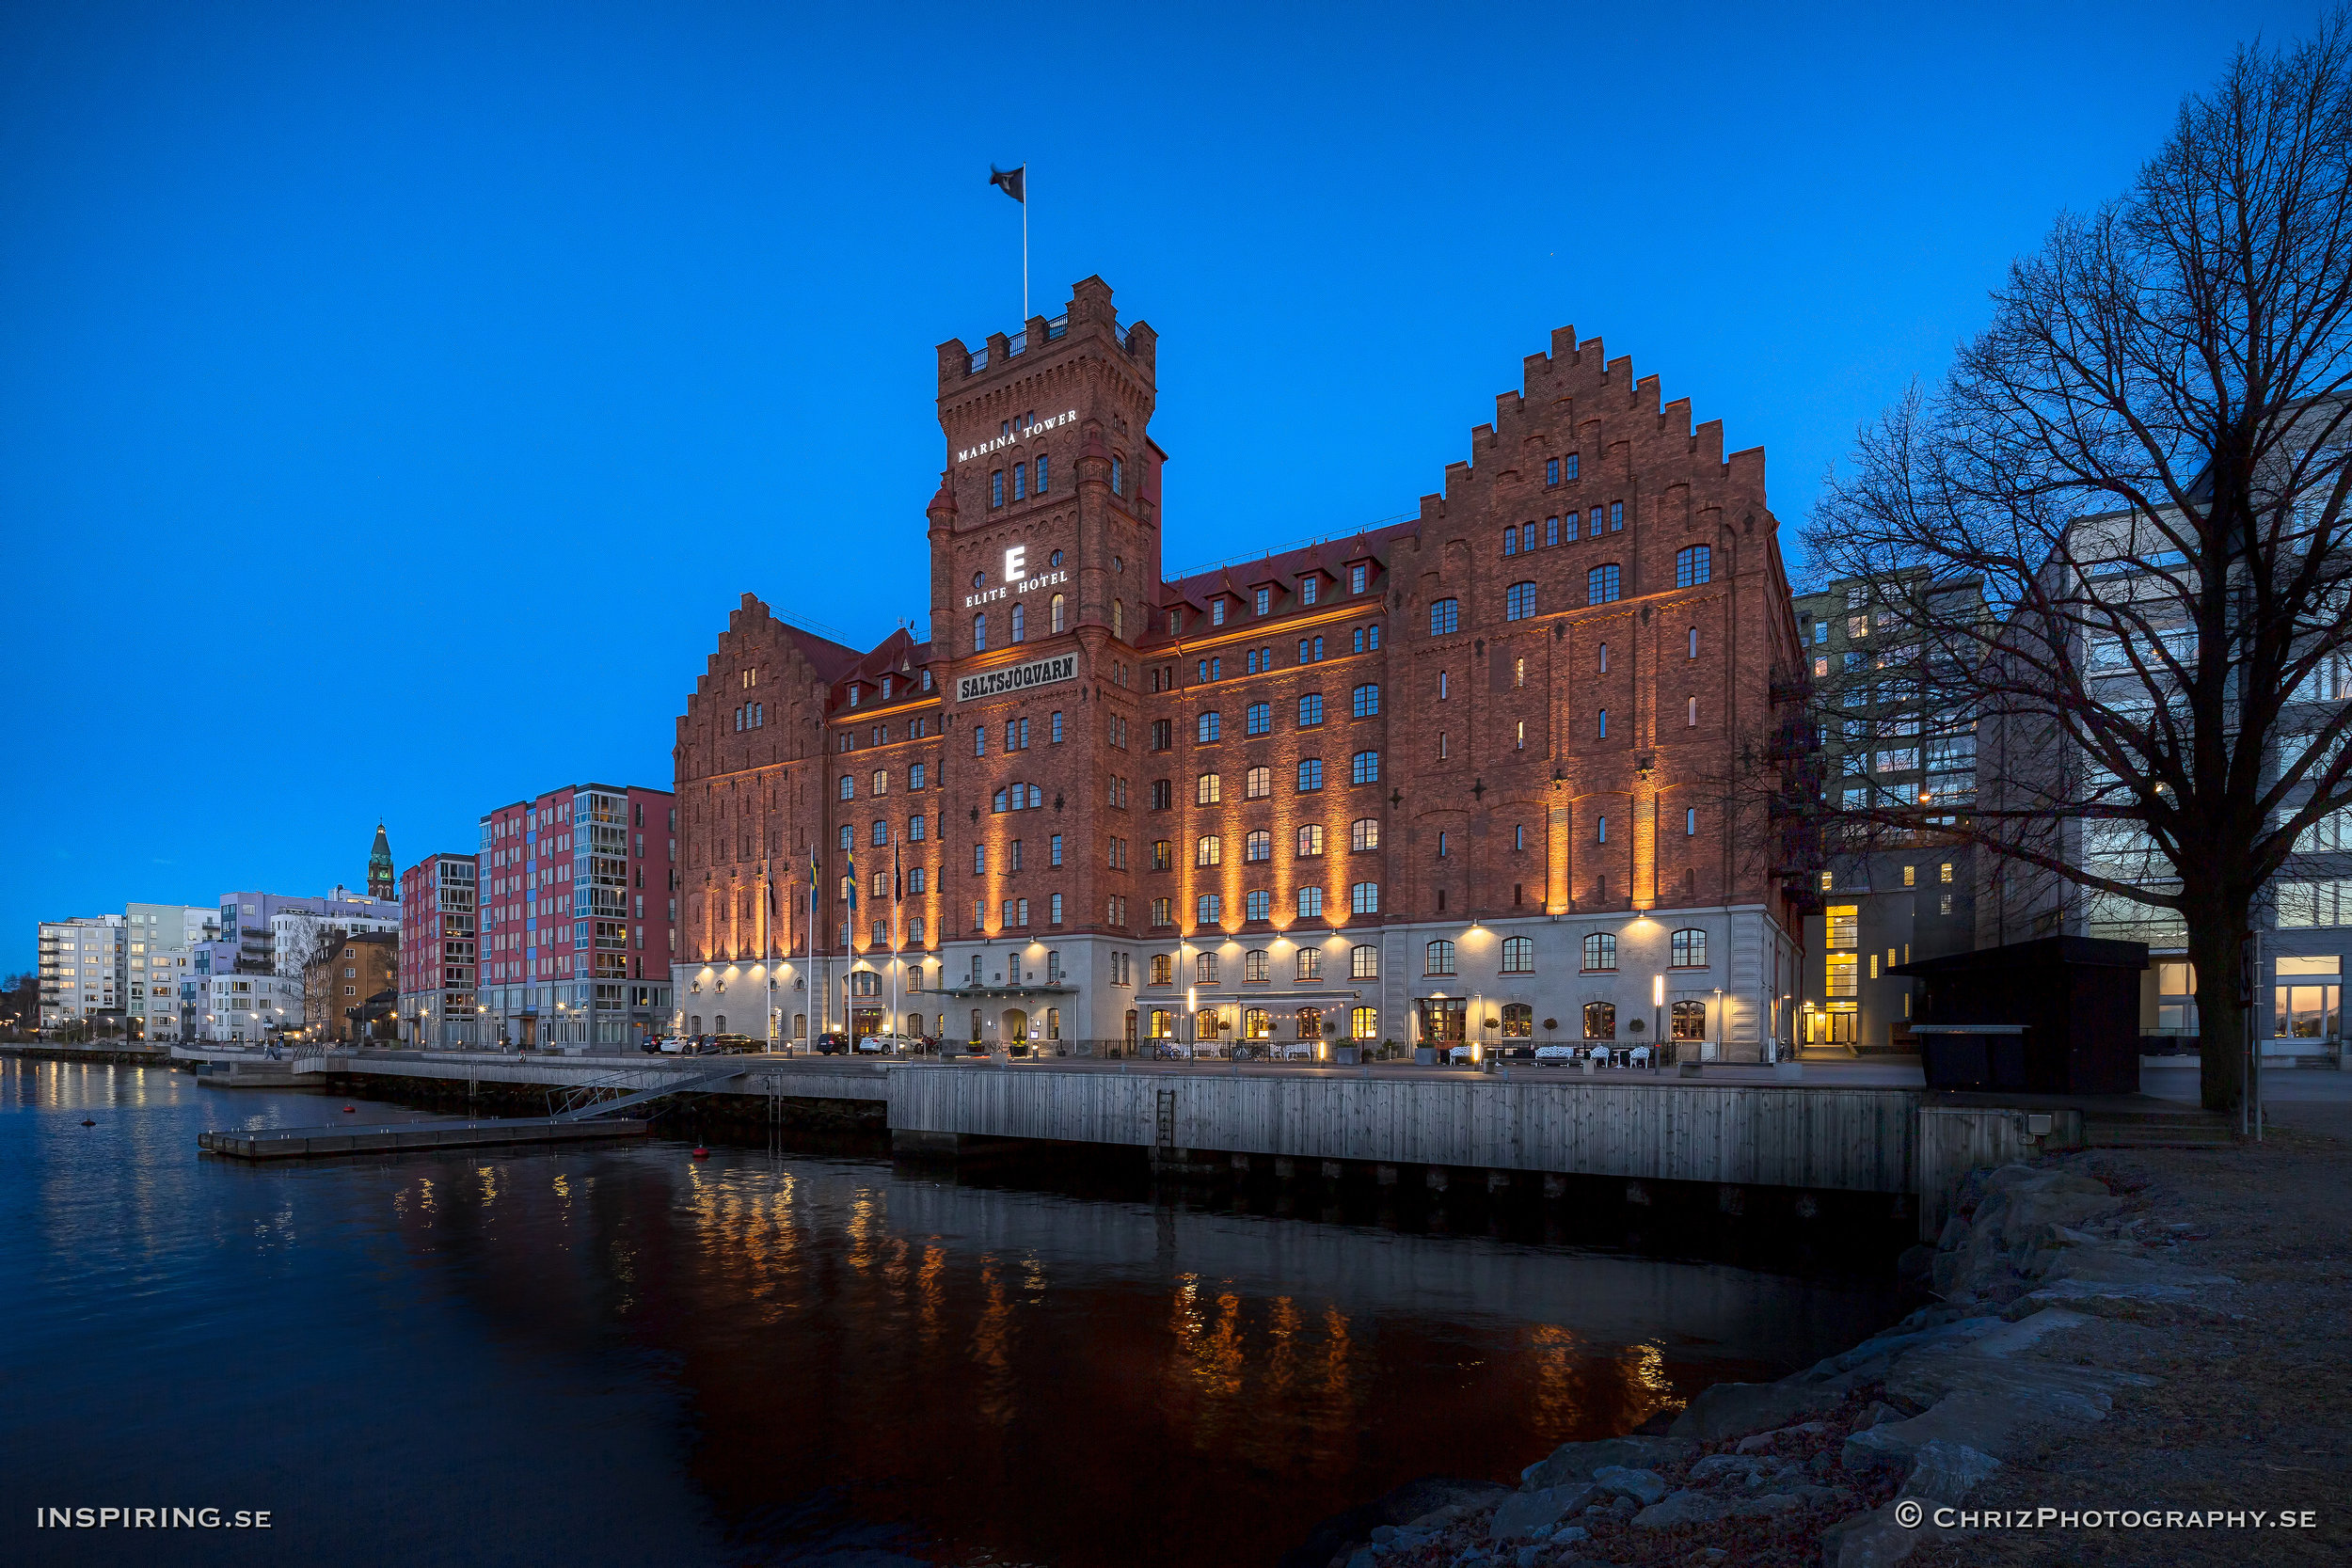 Elite_Hotel_Marina_Tower_Inspiring.se_copyright_ChrizPhotography.se_2.jpg